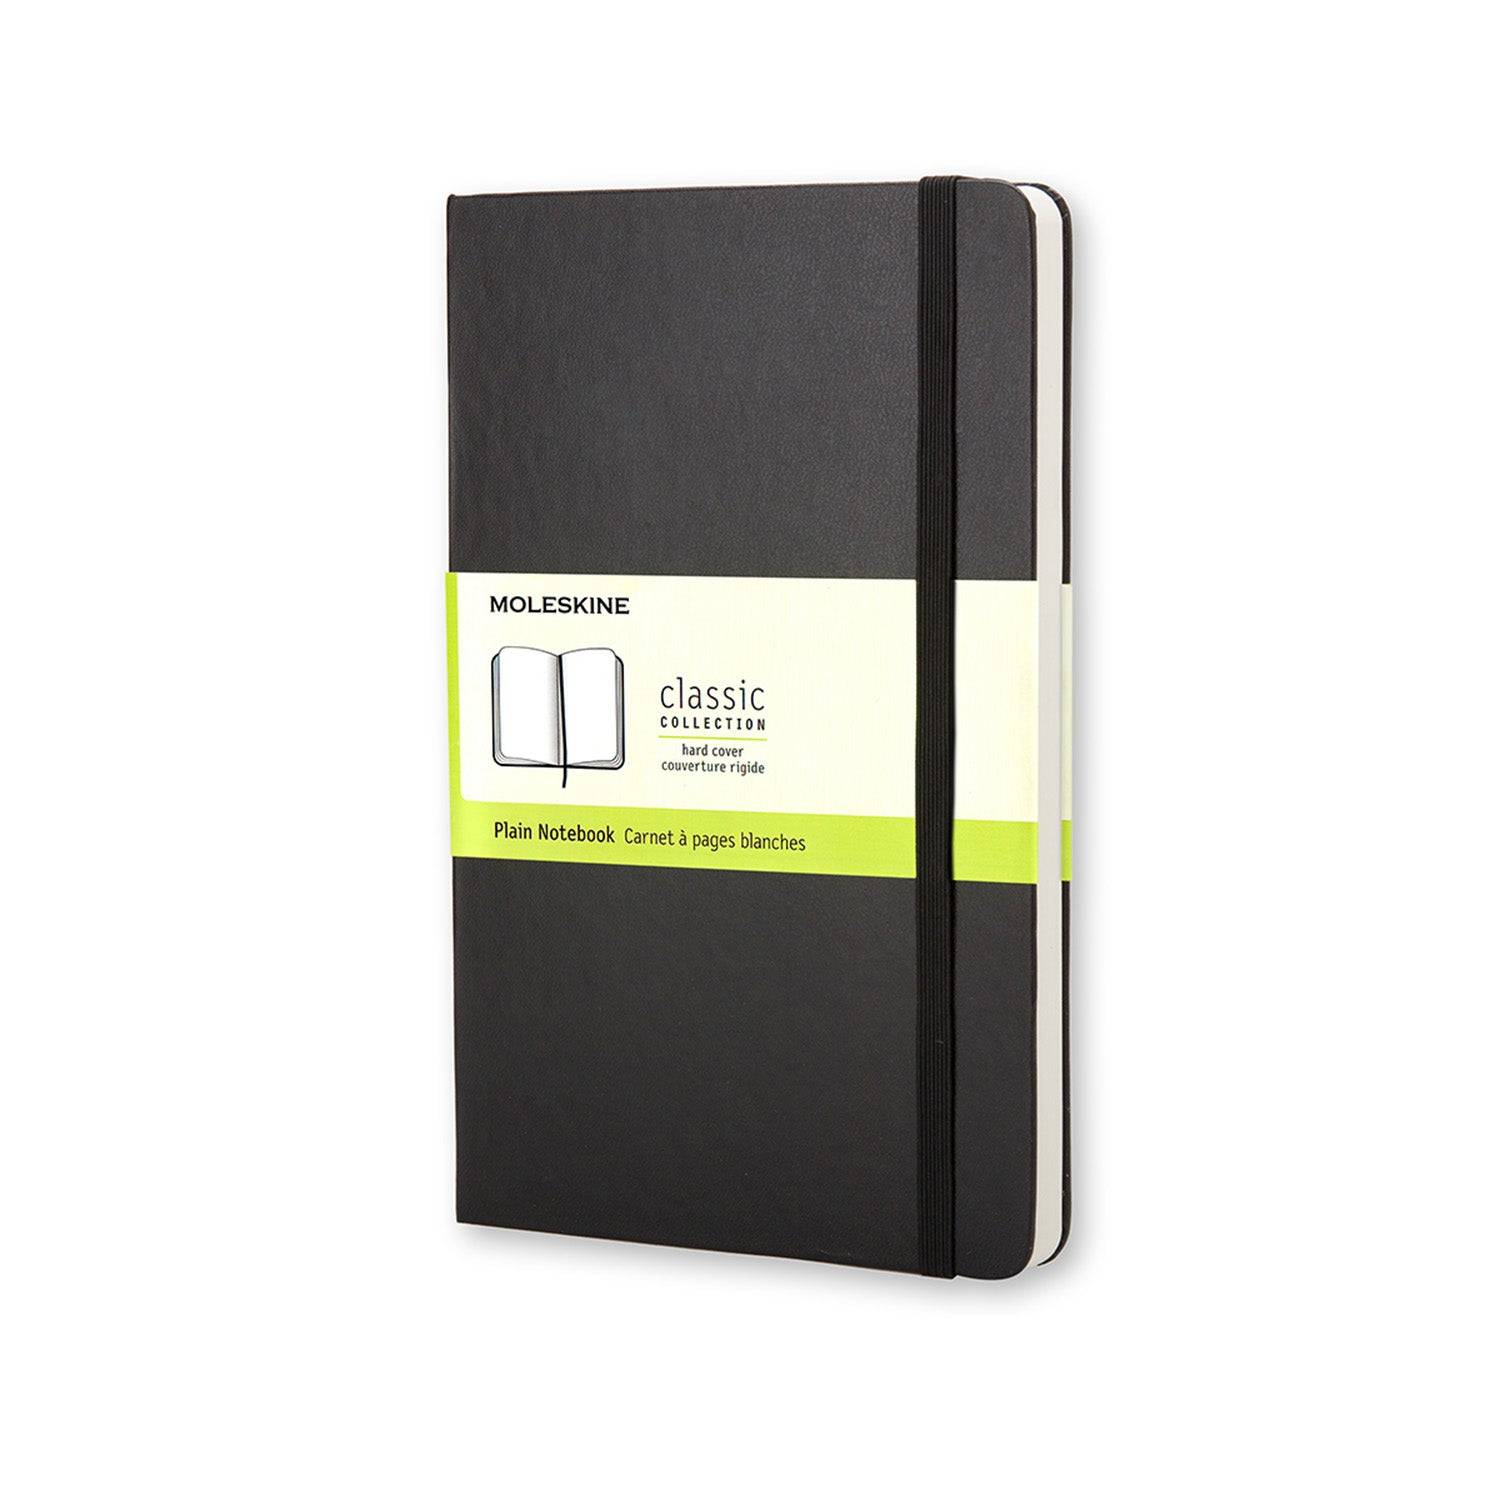 Moleskine Classic Hard Cover Notebook Large PLAIN Black